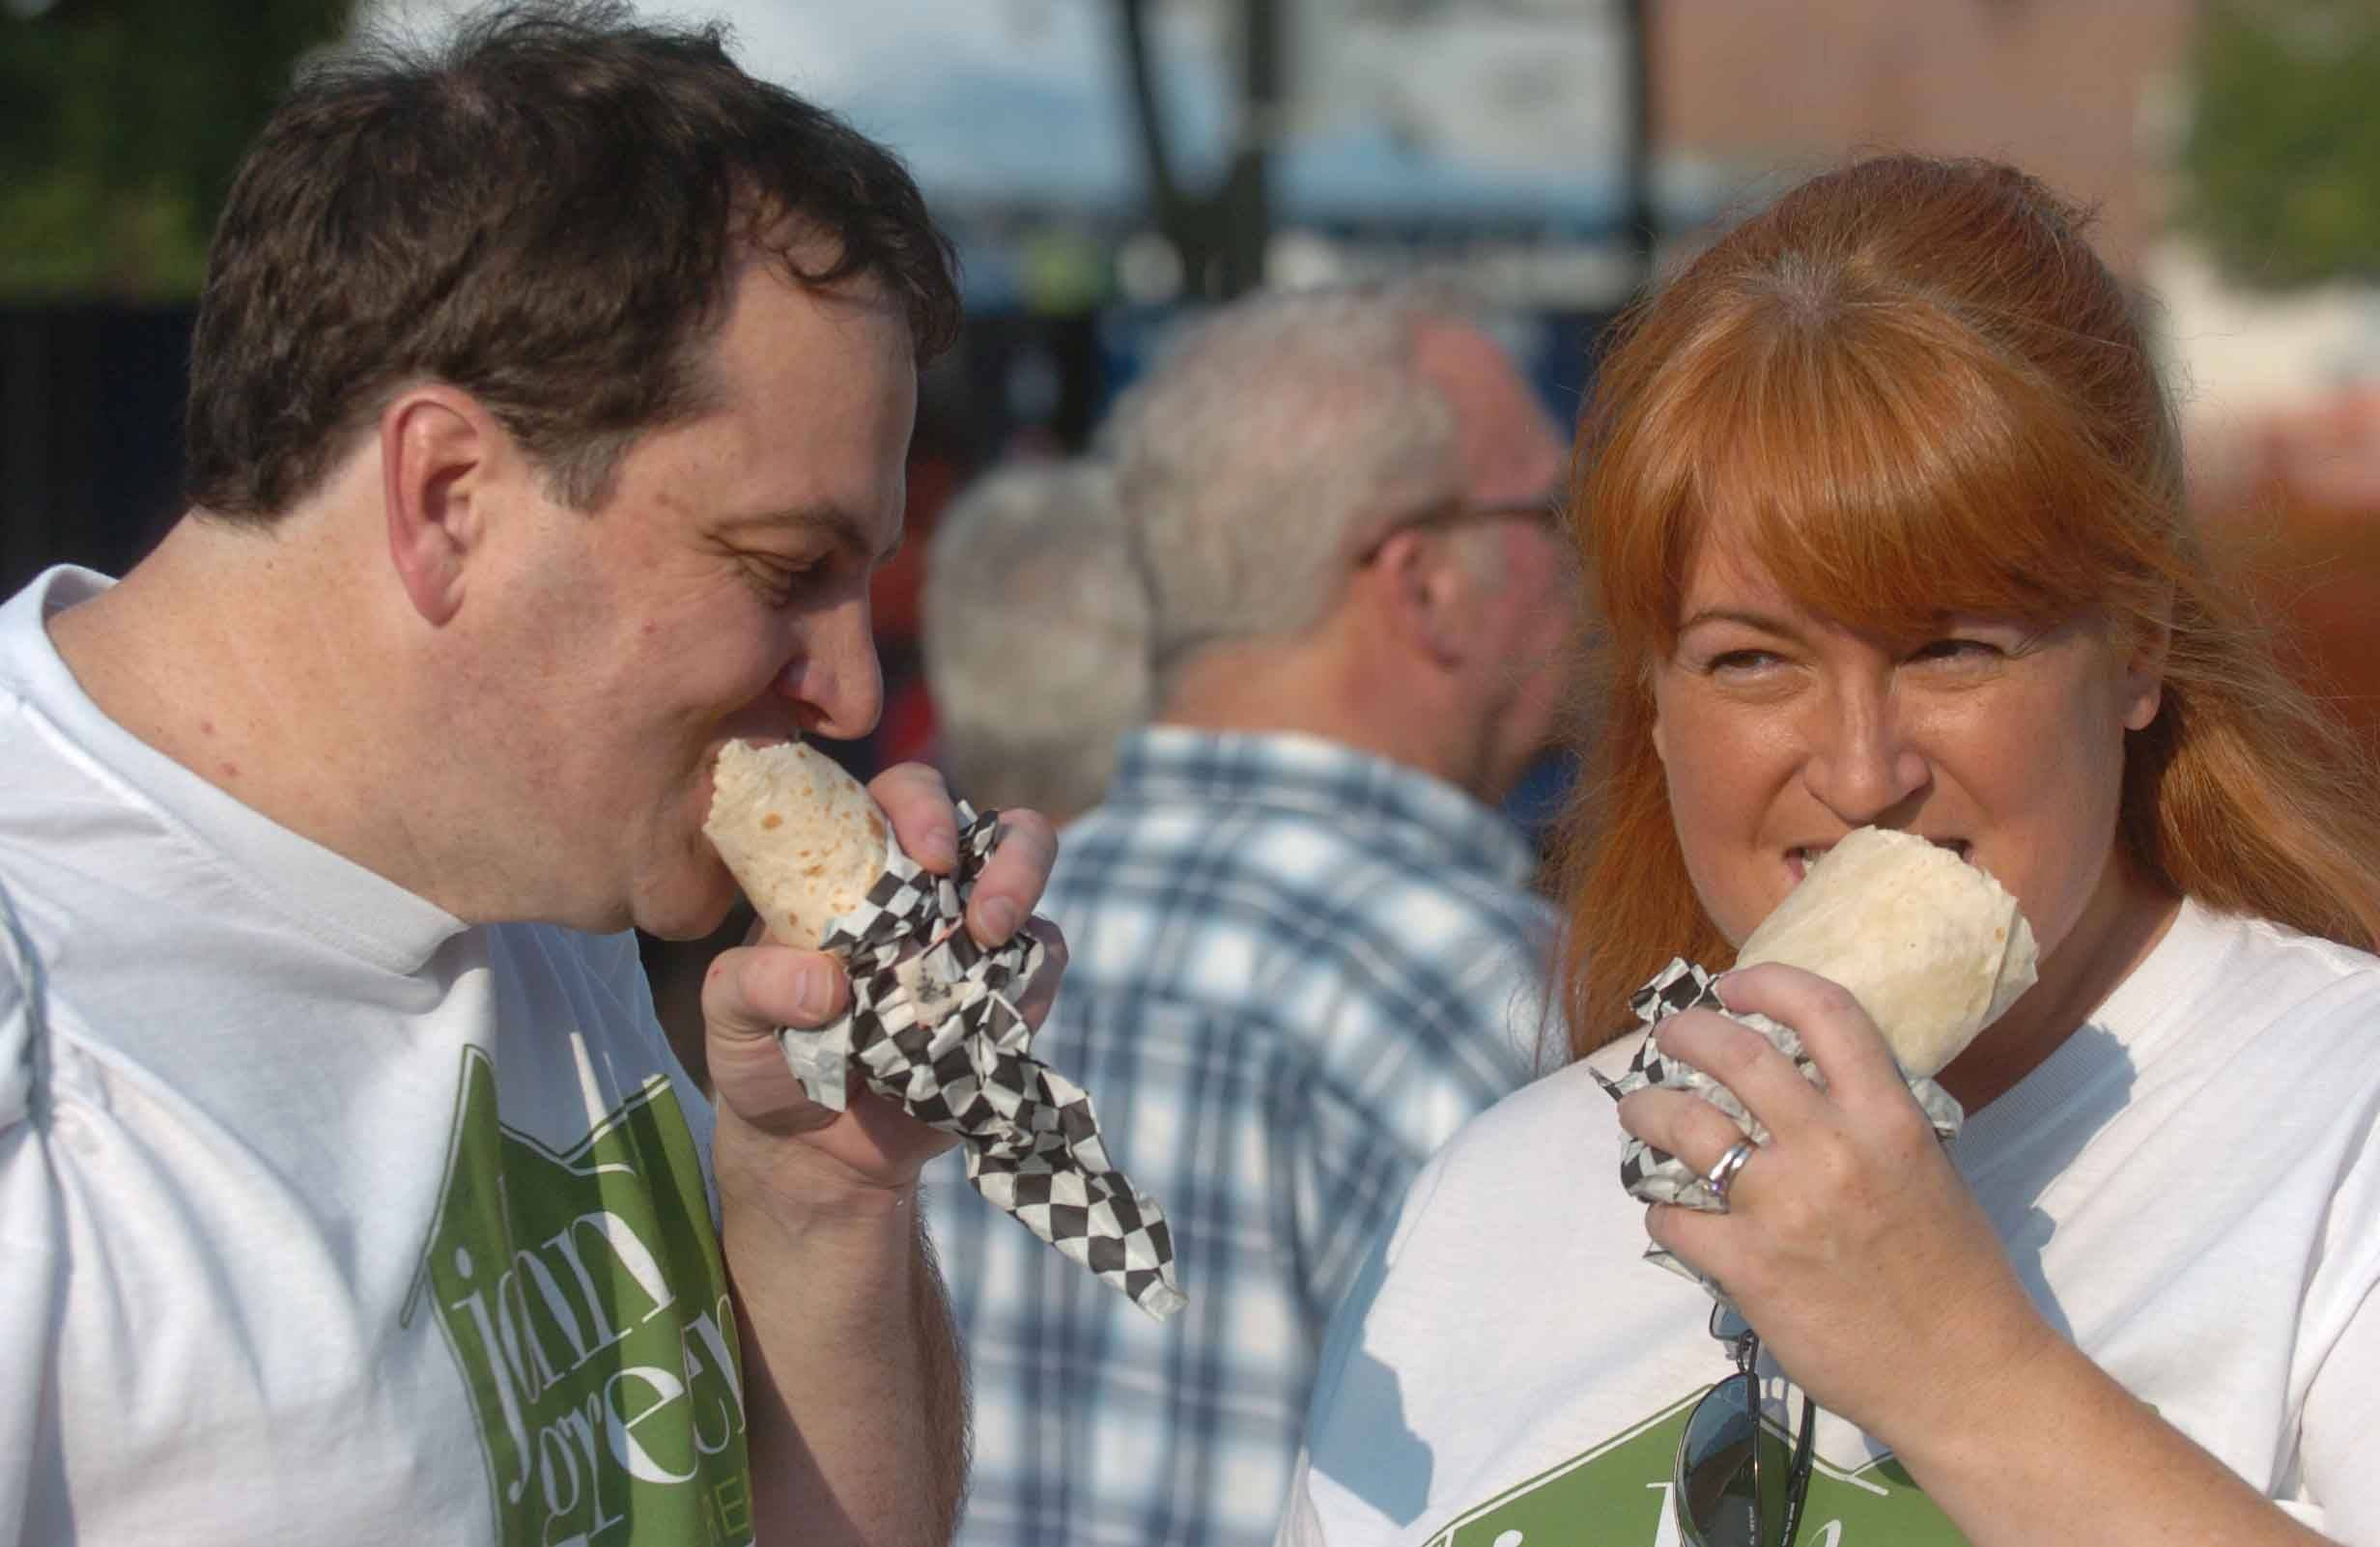 Kirk and Cassie Moore of Warrenville enjoy wraps during the Last Fling in Naperville Friday.